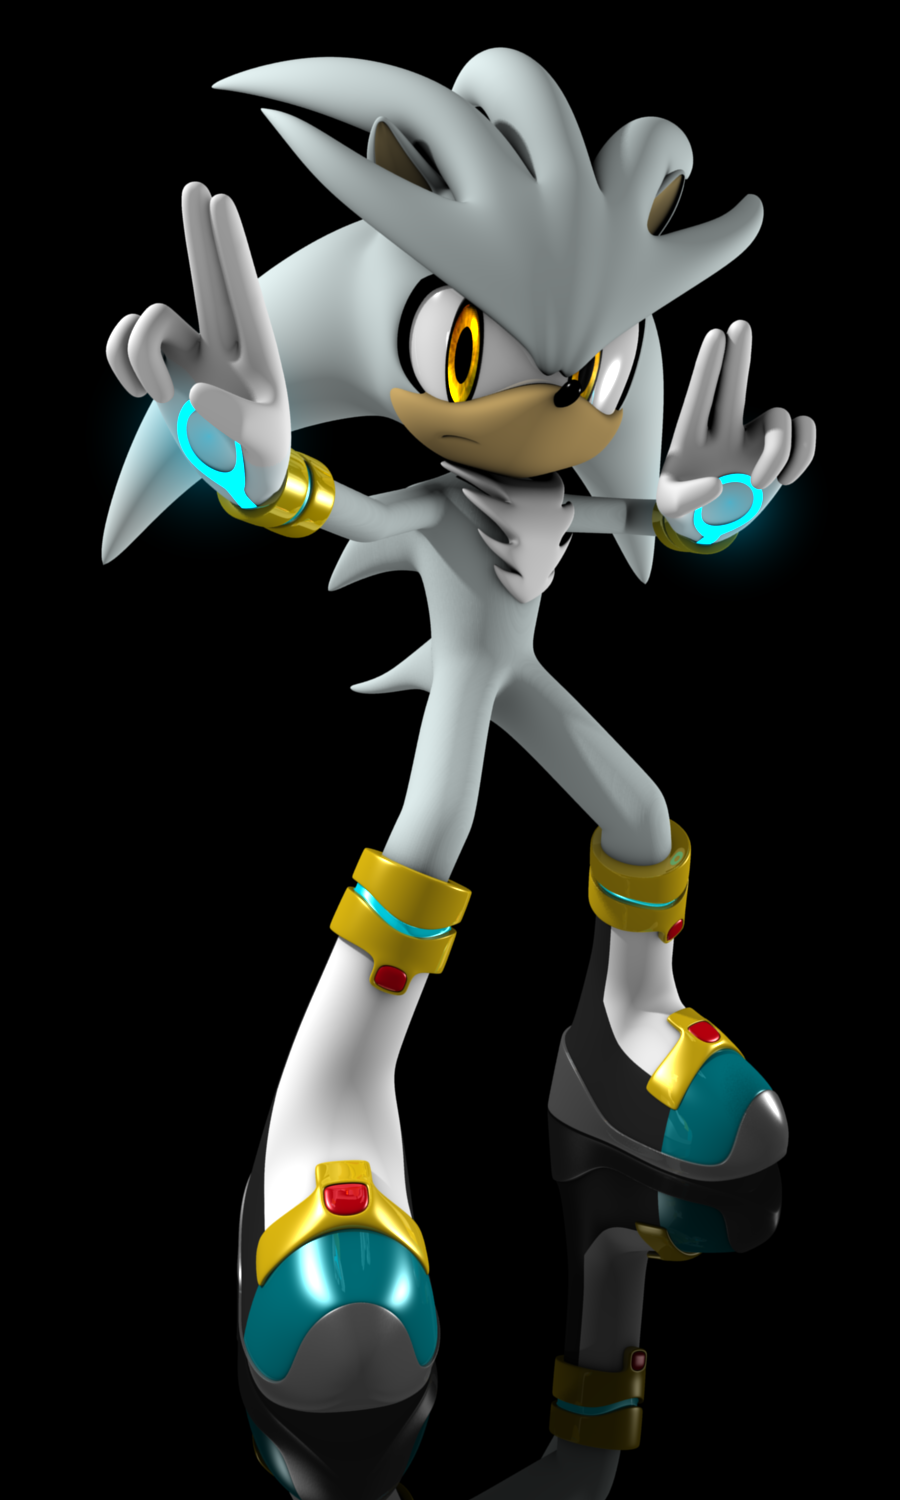 3D Sonic Characterz Images Silver The Hedgehog HD Wallpaper And Background Photos